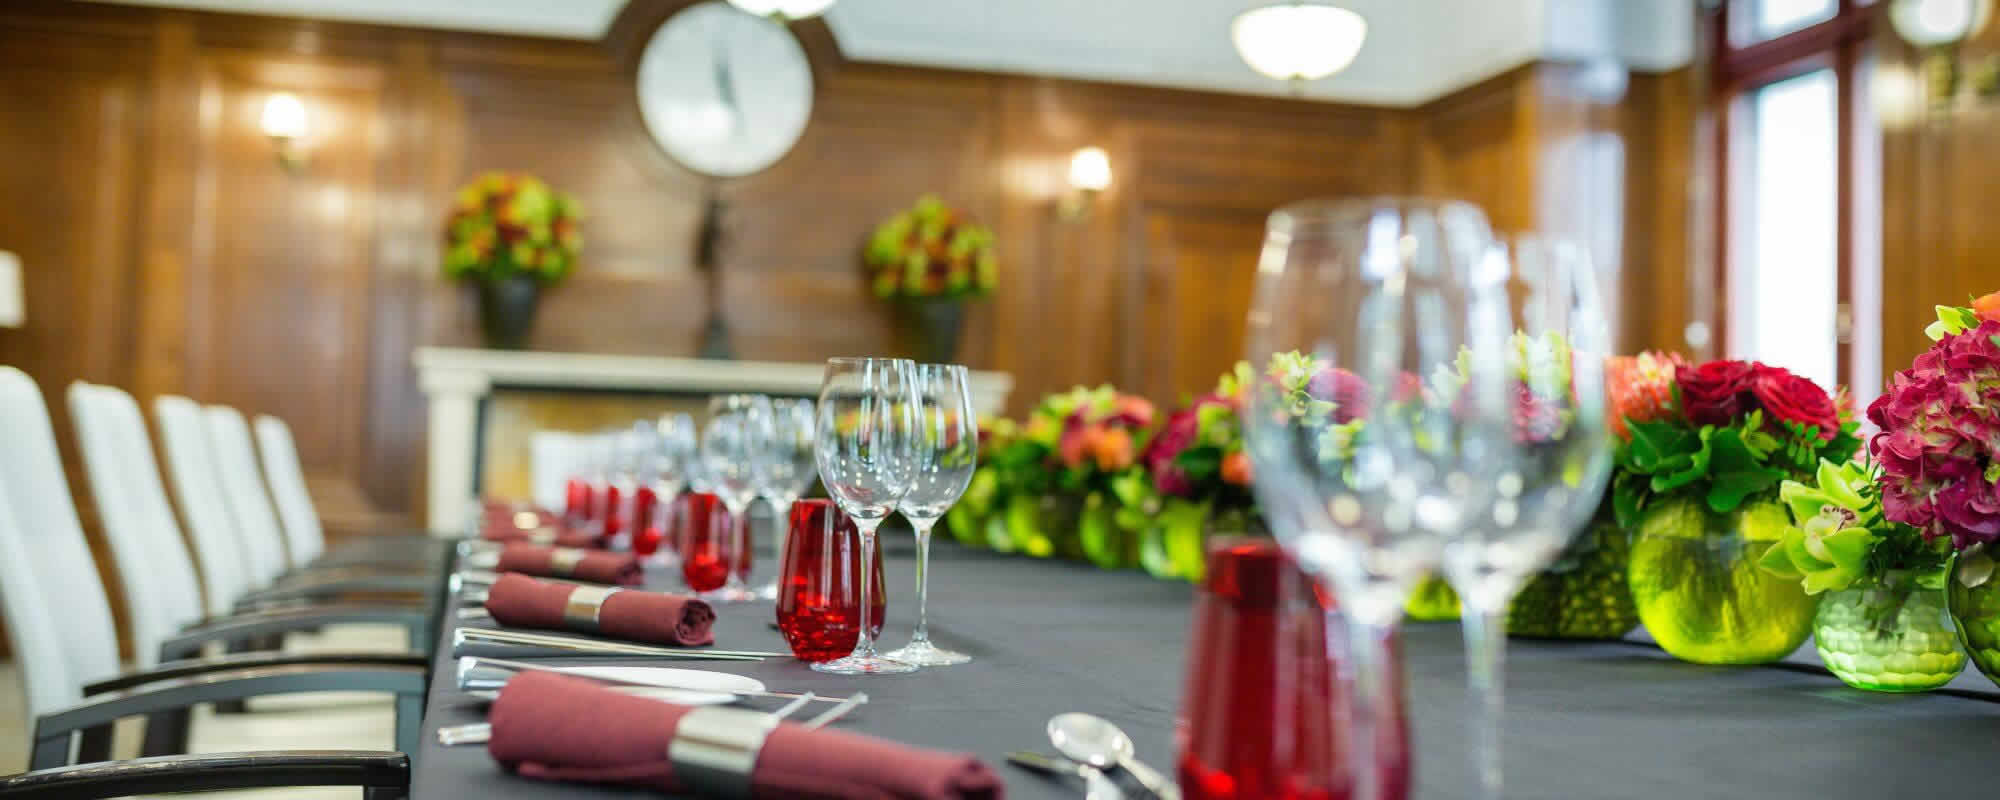 Meeting Rooms and Private Dining